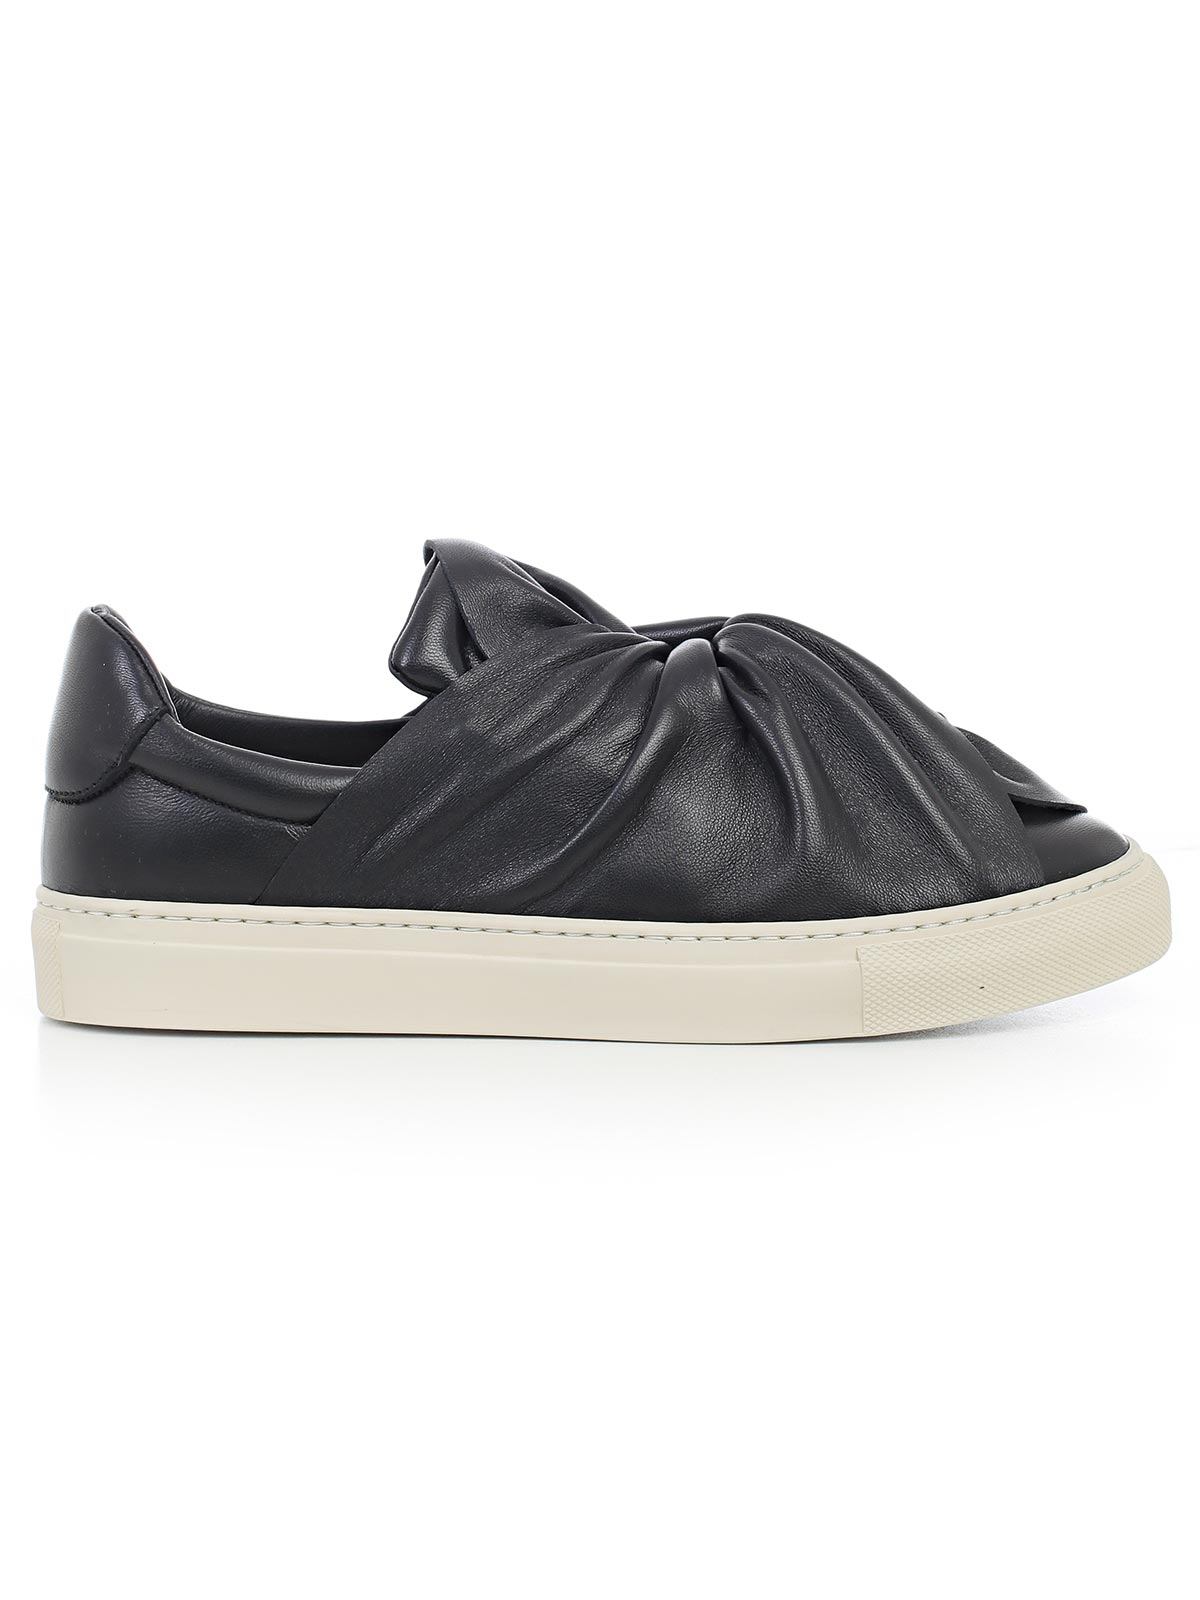 Picture of Ports 1961 Footwear